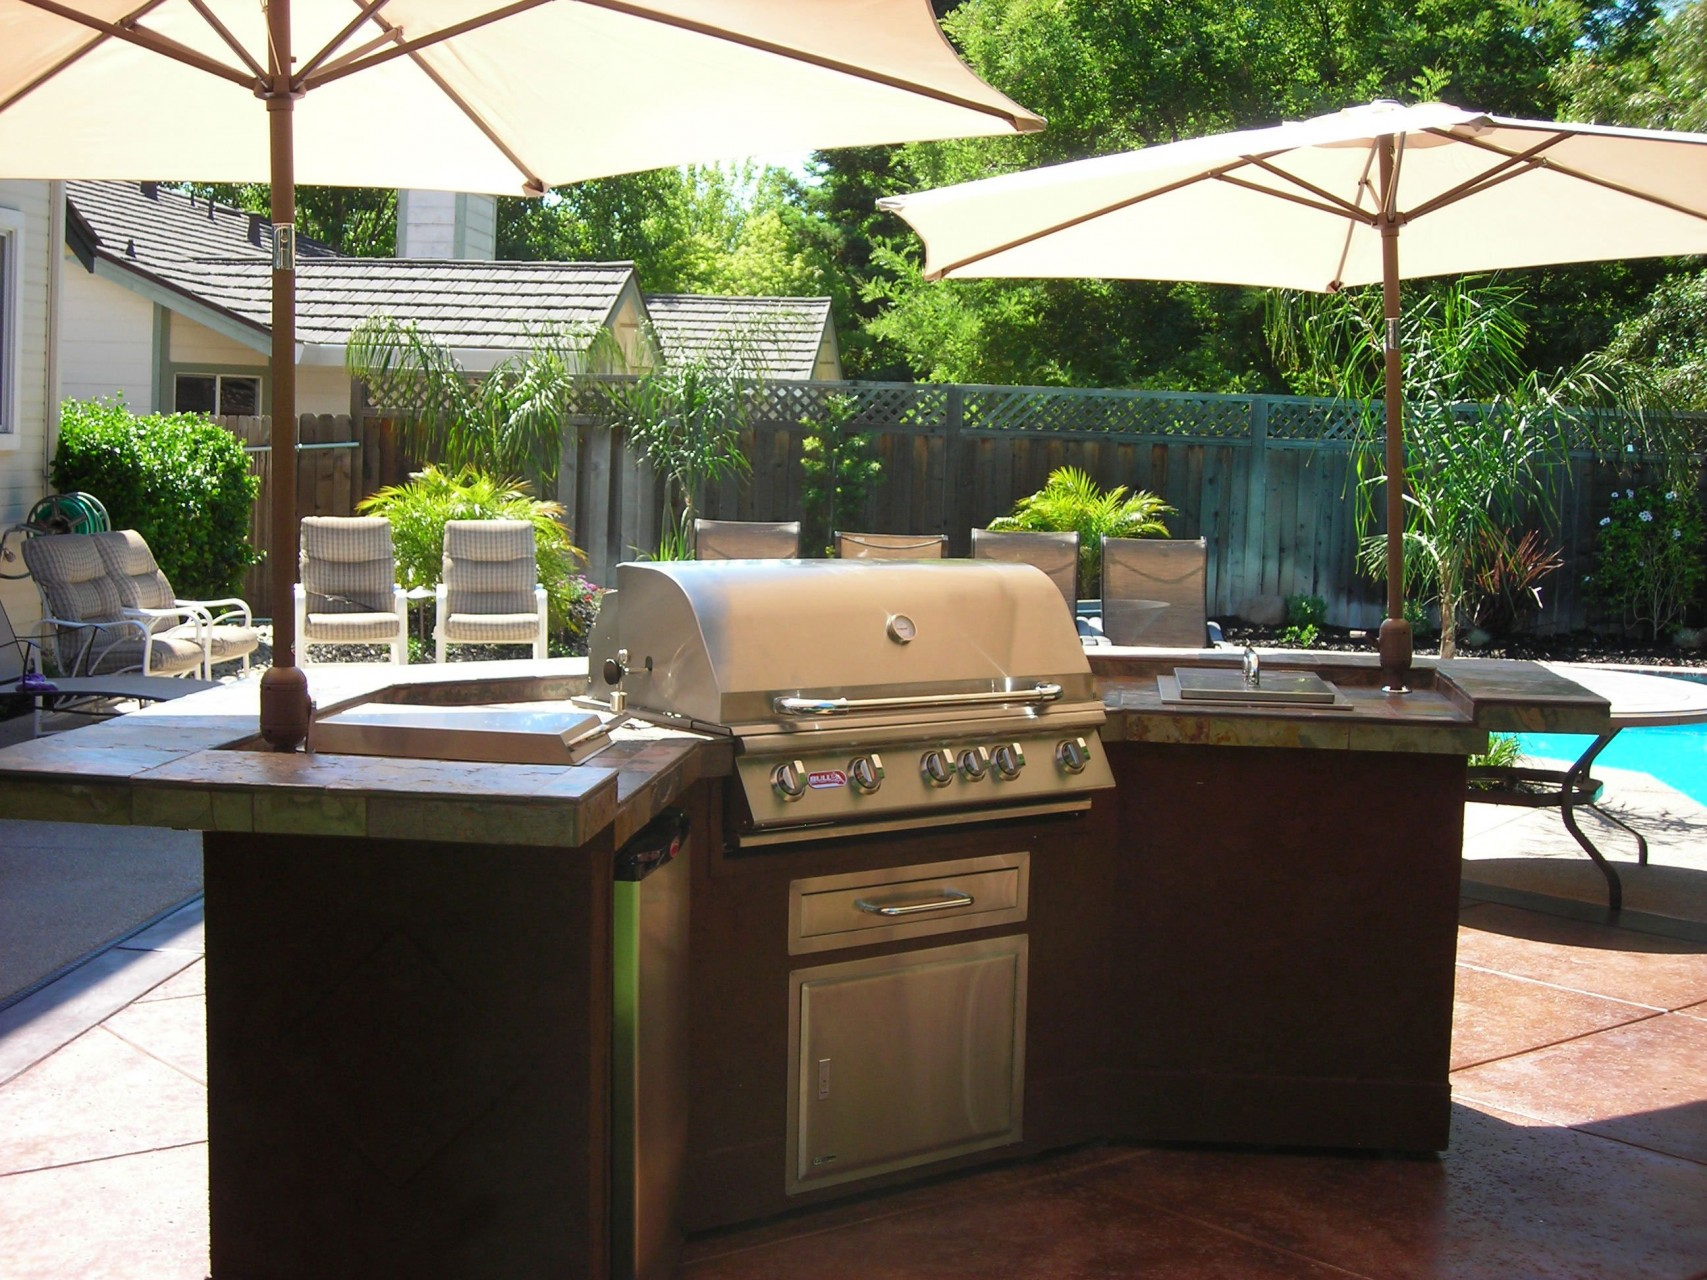 Outdoor kitchen island modular outdoor kitchens kits for Outdoor kitchen equipment